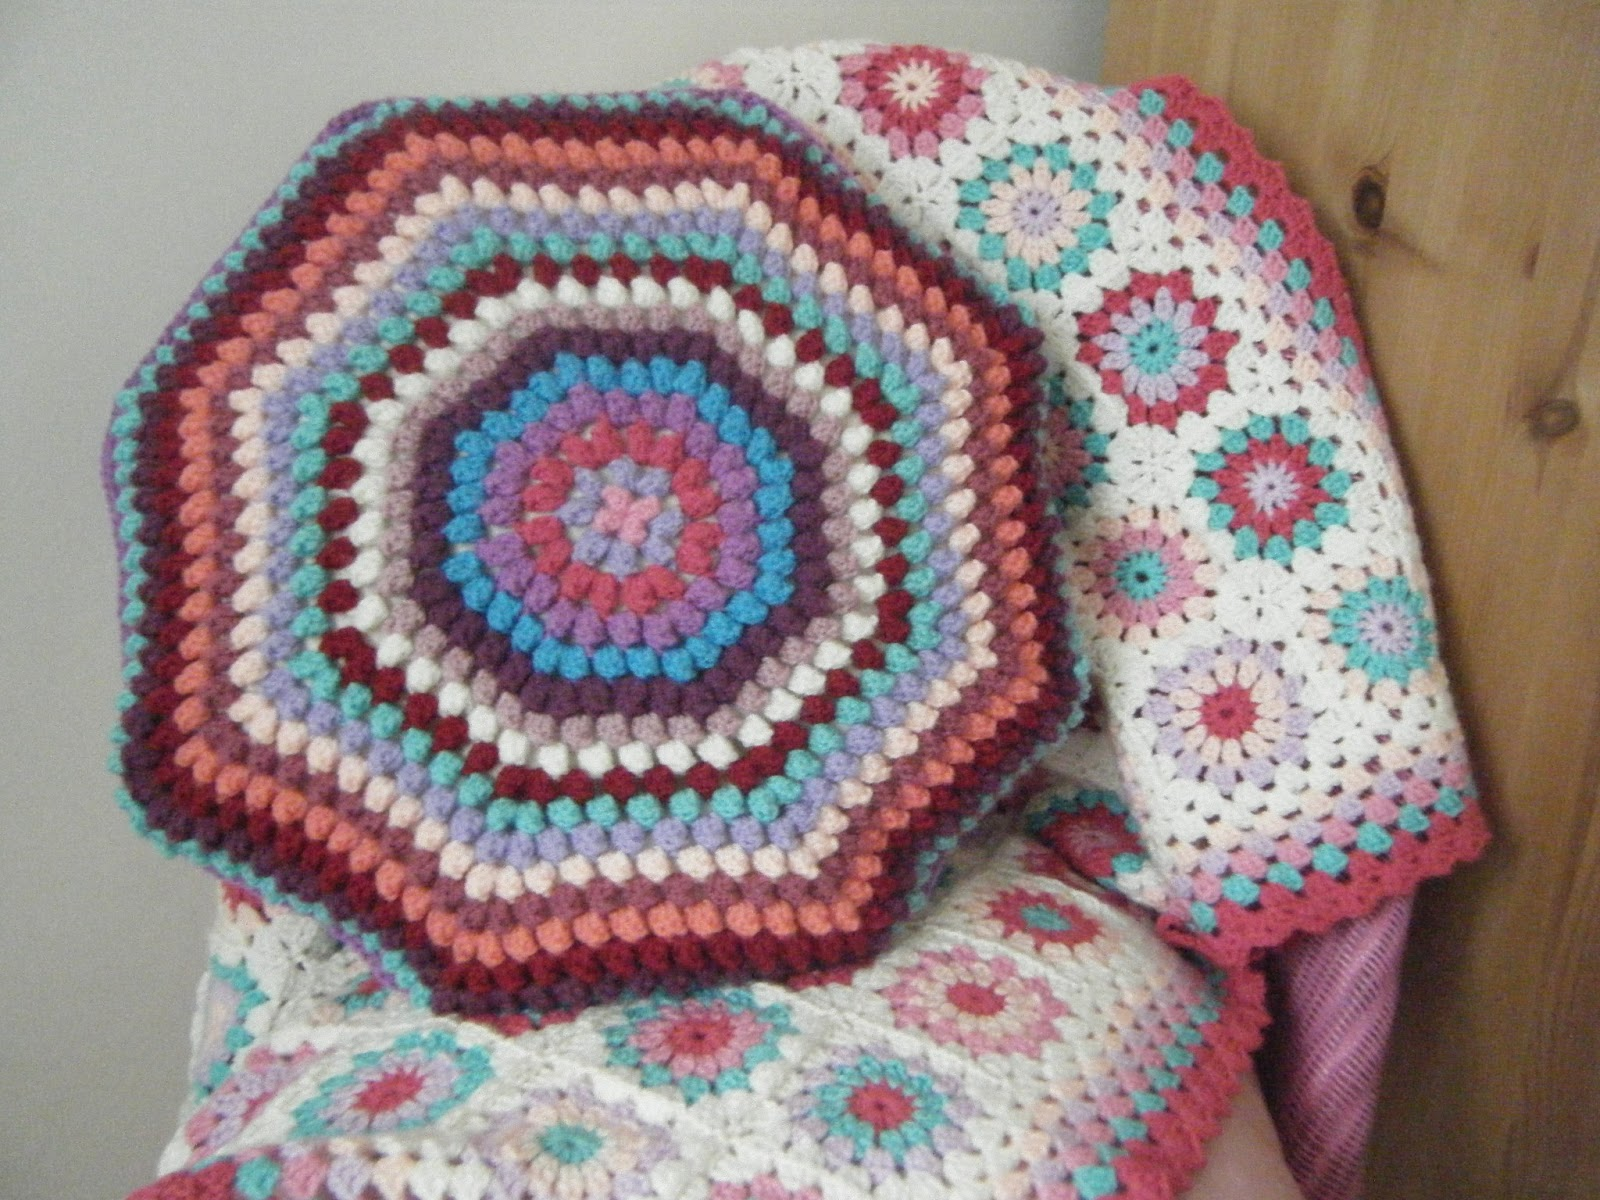 Crochet Bobble Stitch Cushion